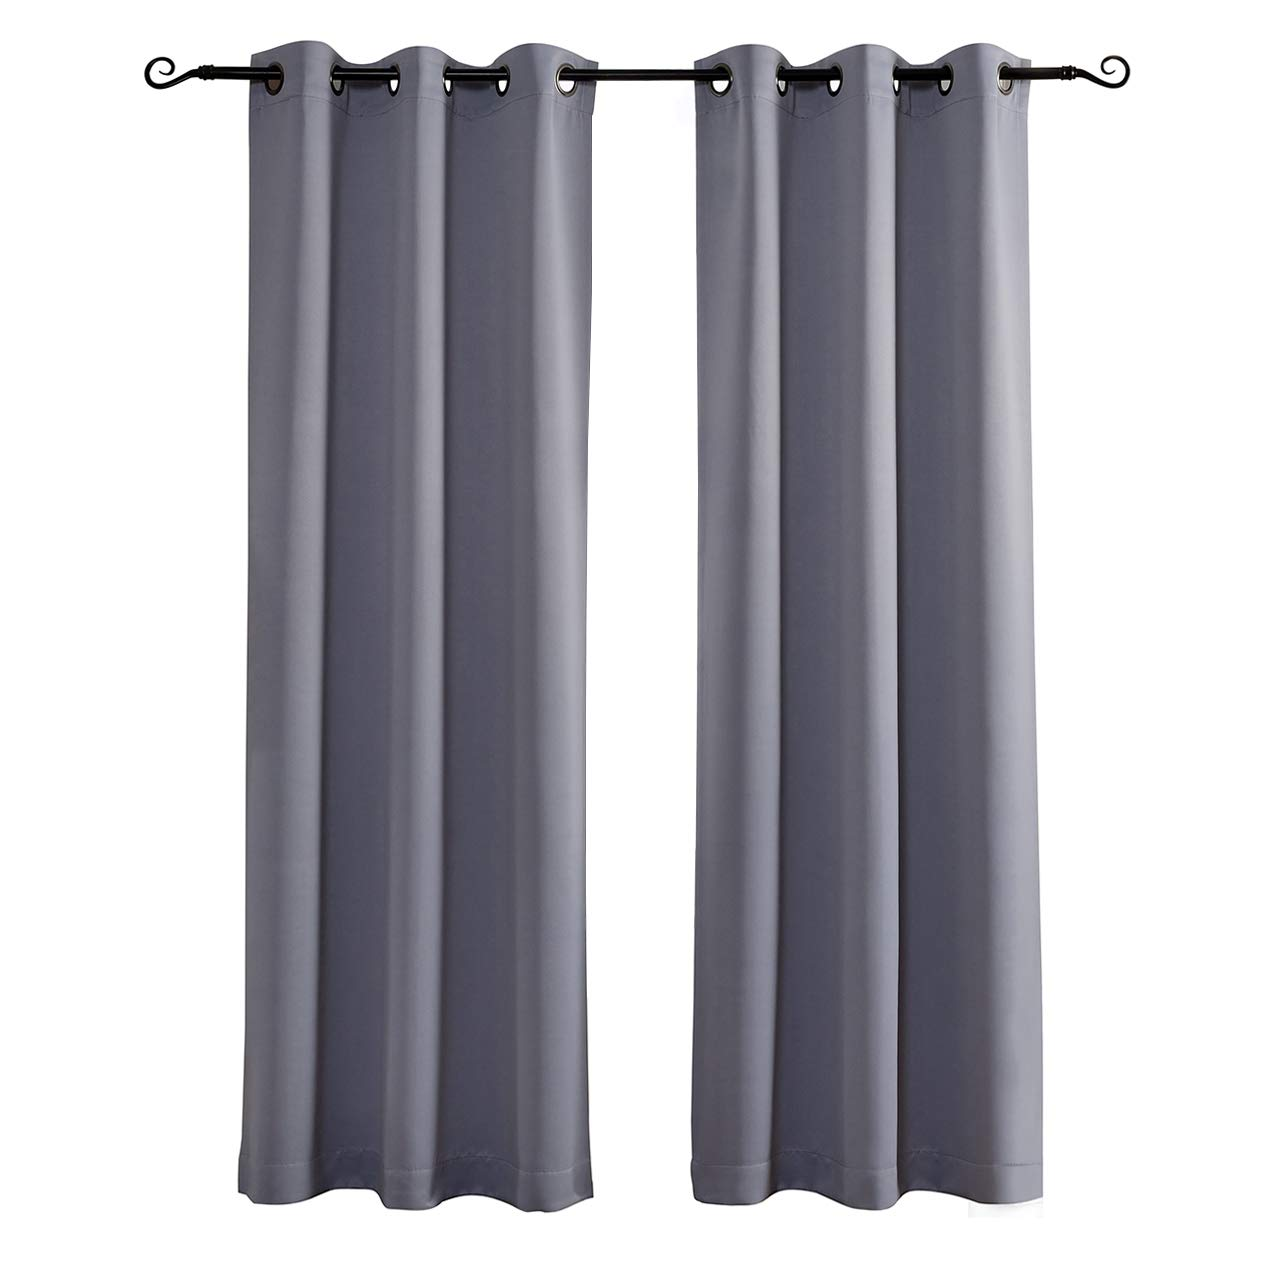 MYSKY HOME Grommet Top Thermal Insulated Window Blackout Curtains, 42 x 84 Inch, Grey, 1 Panel